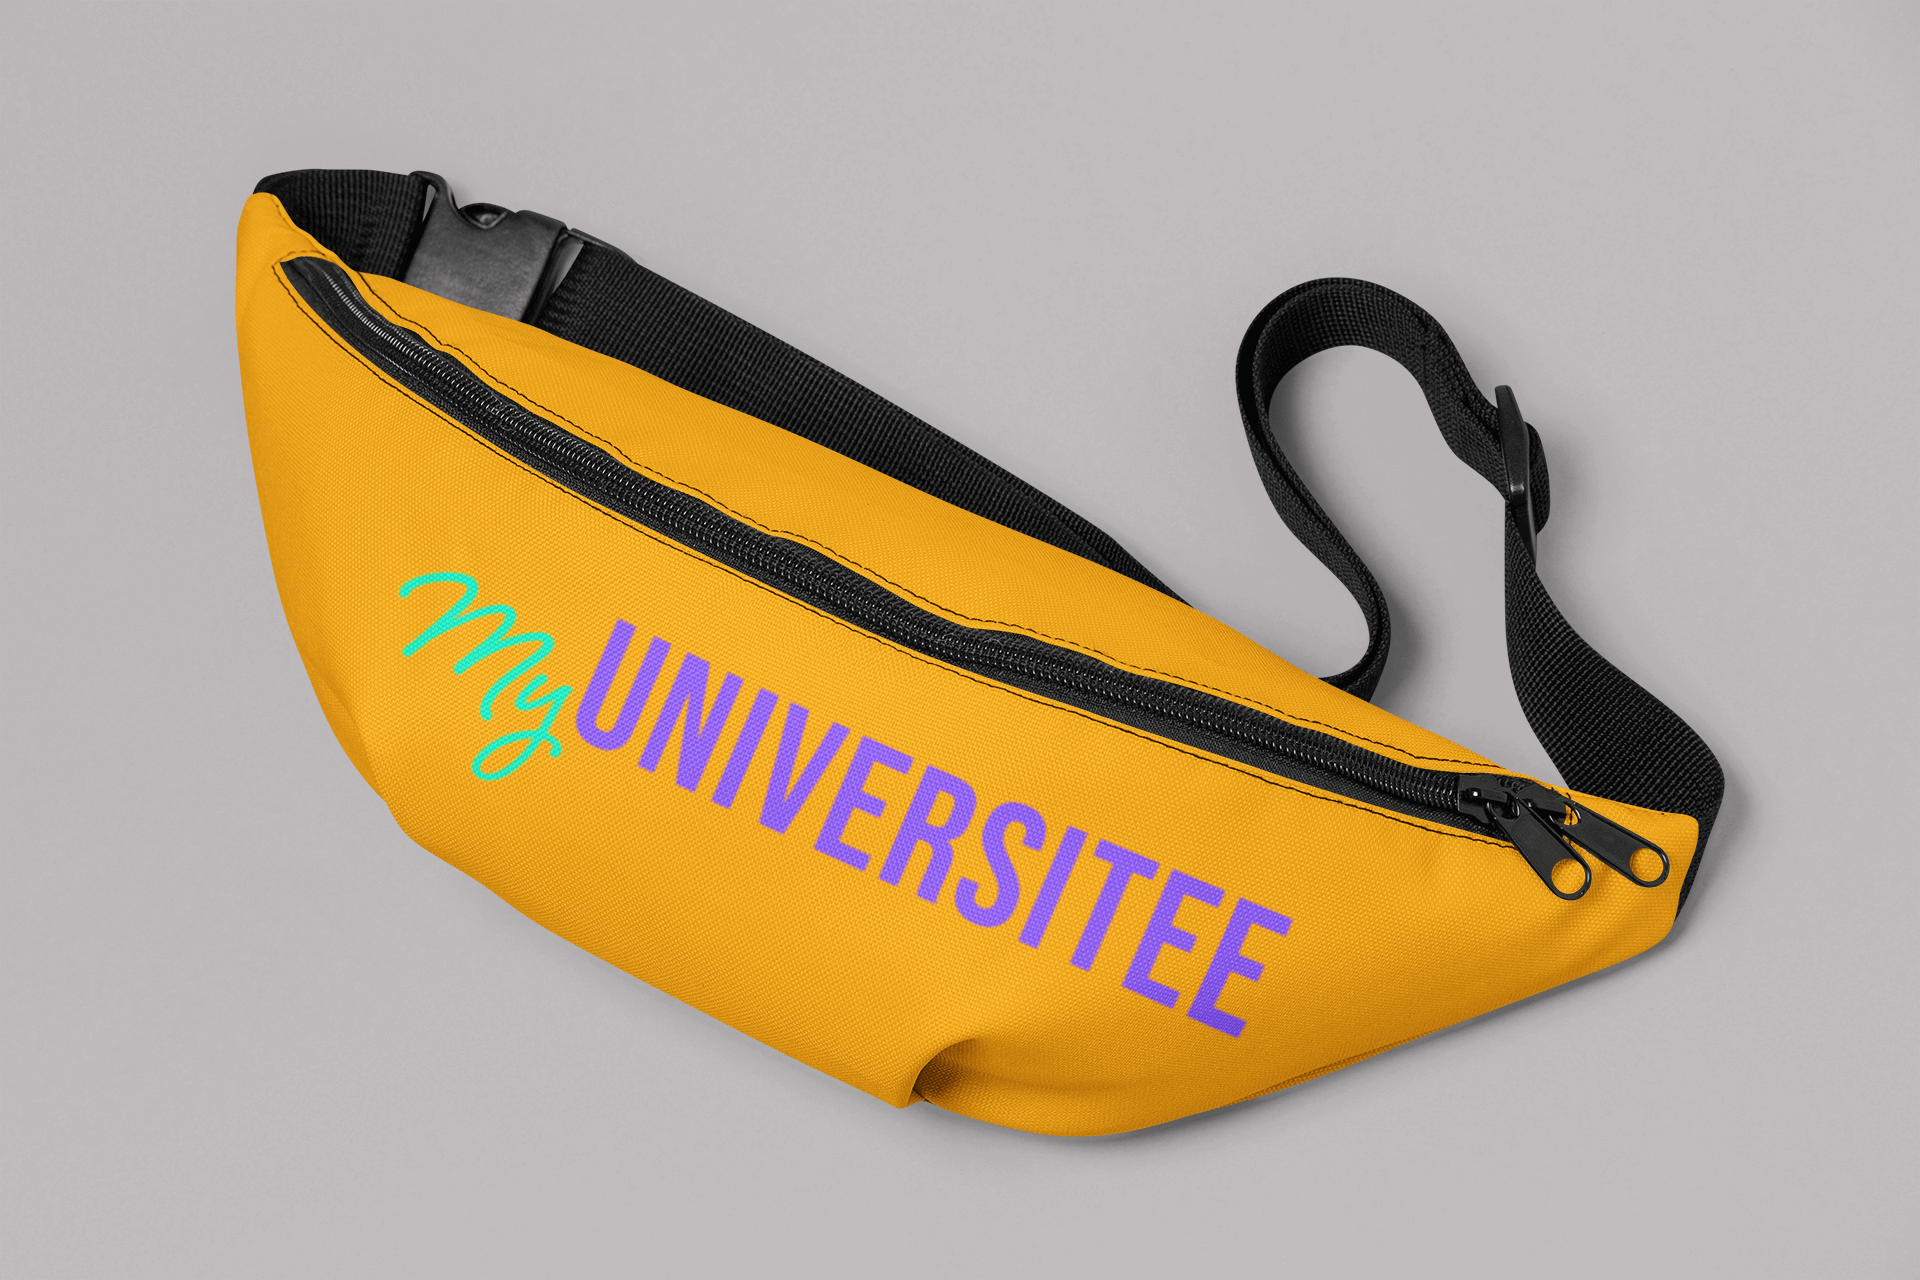 fanny-pack-mockup-featuring-a-plain-background-29202